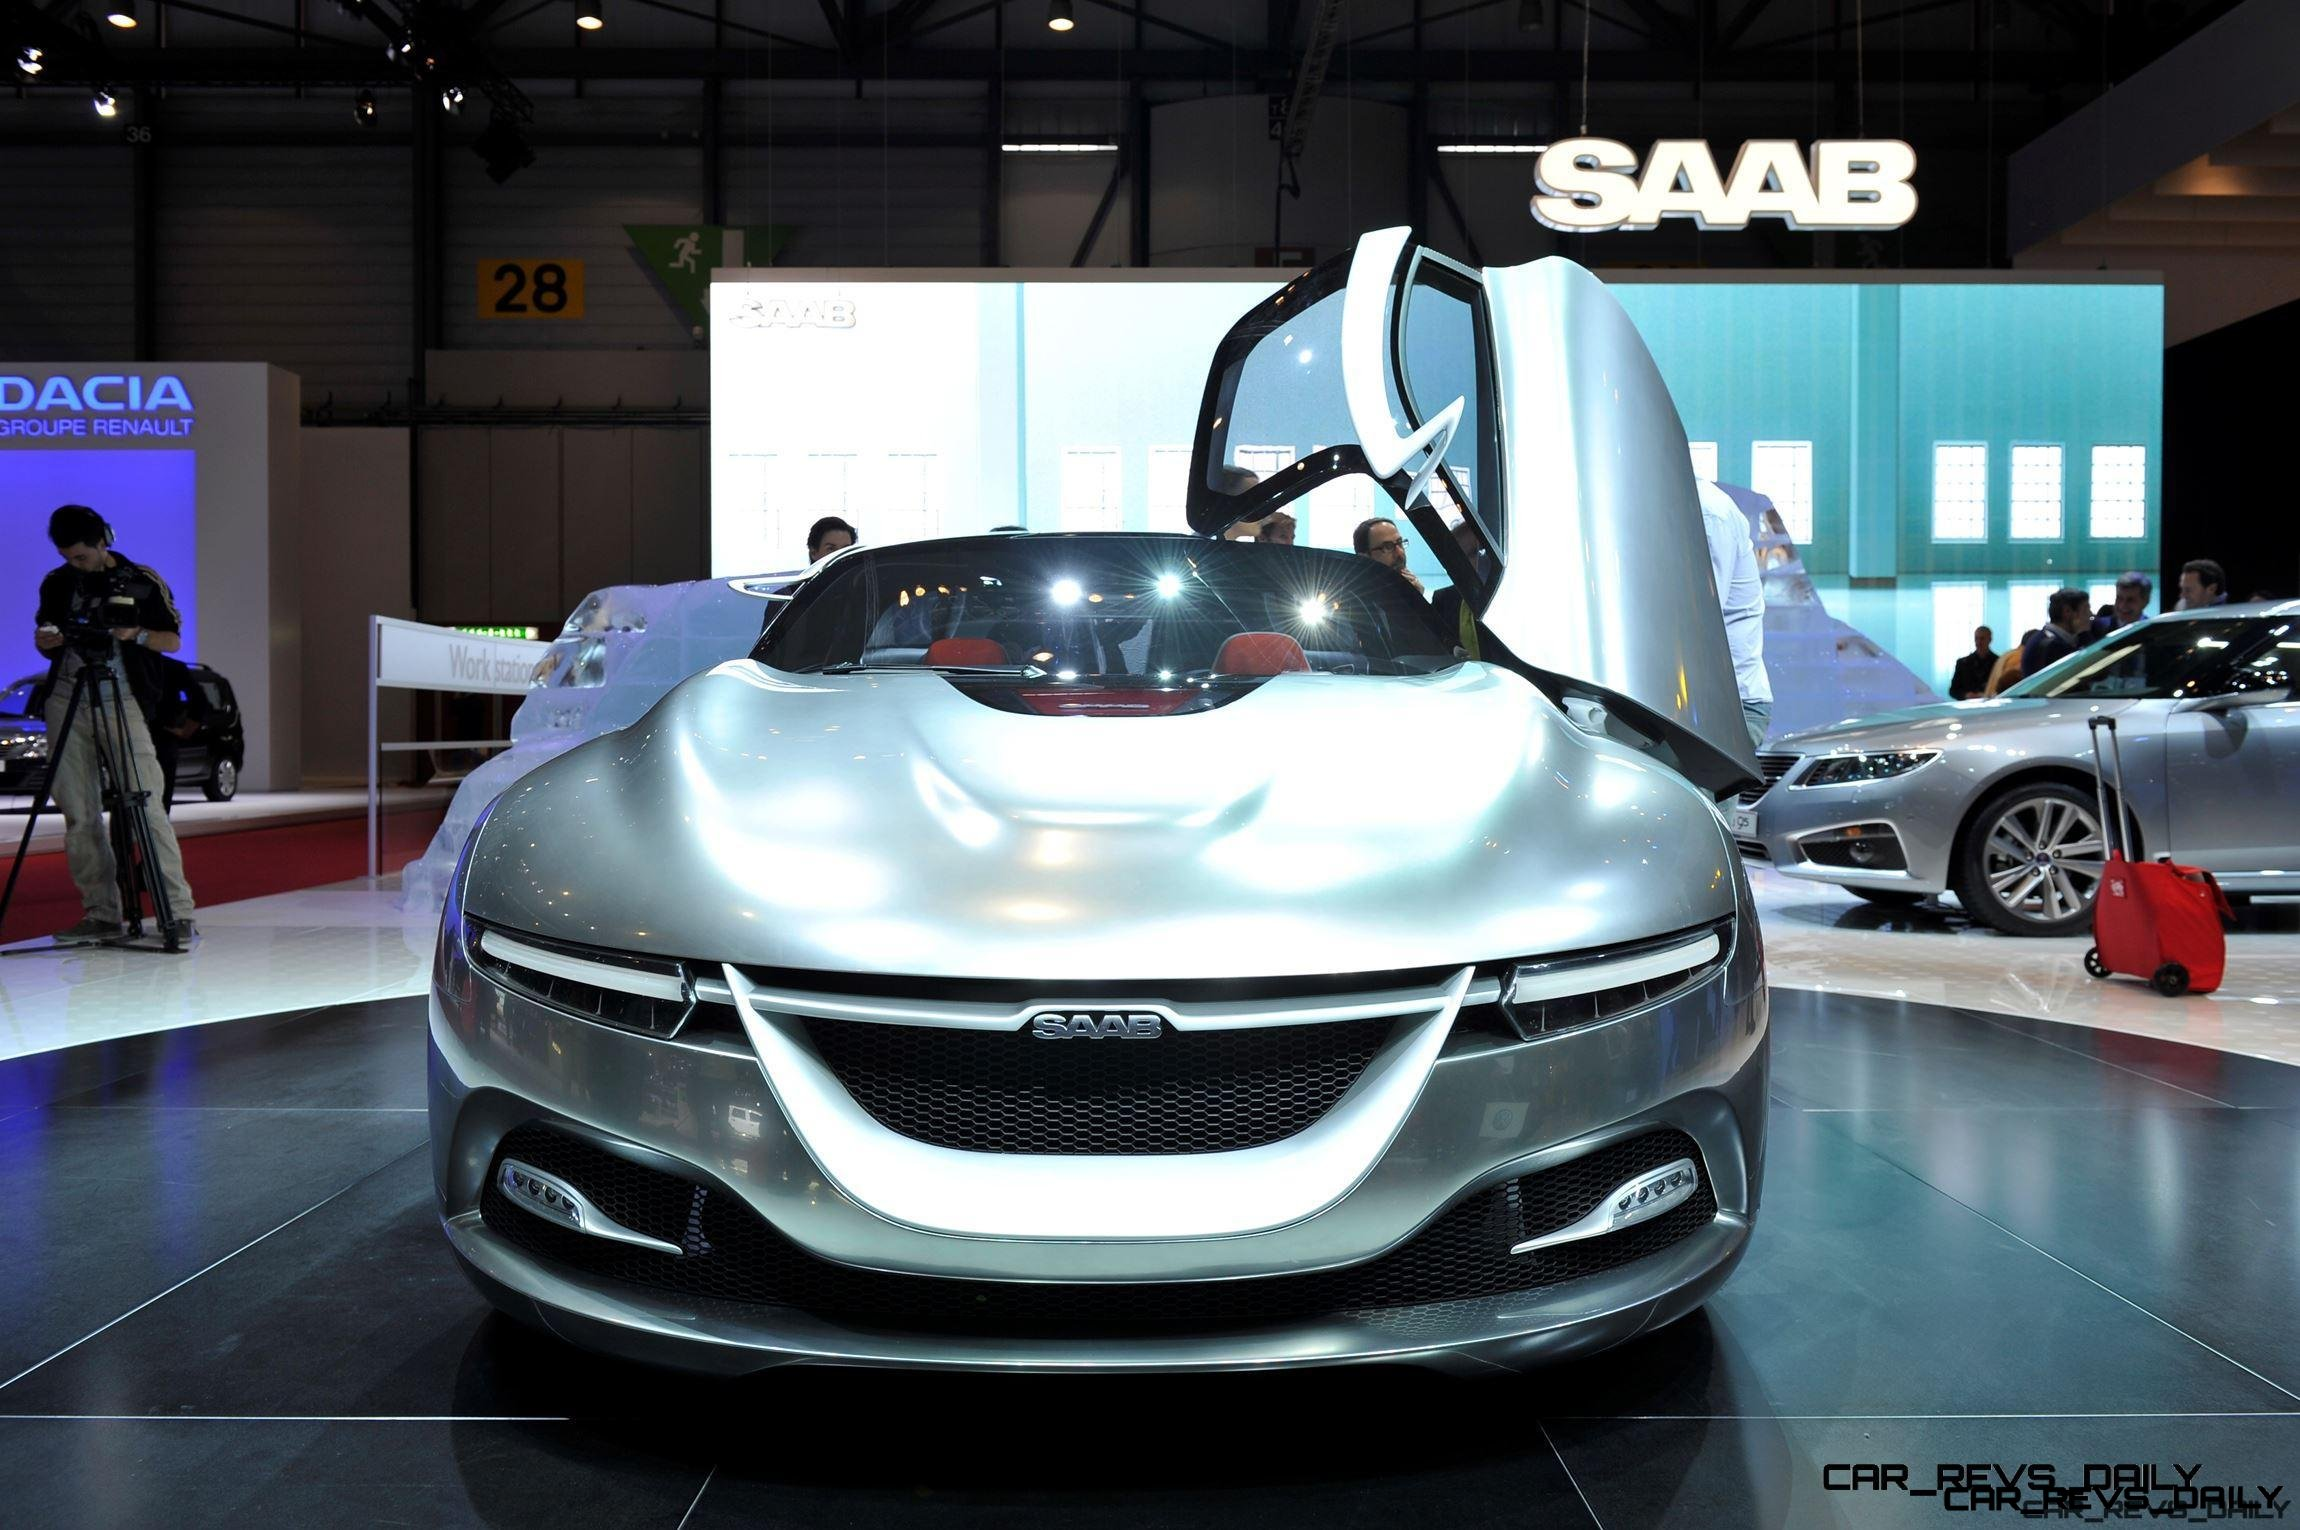 Concept Debrief – 2011 SAAB PhoeniX was Dead on Arrival